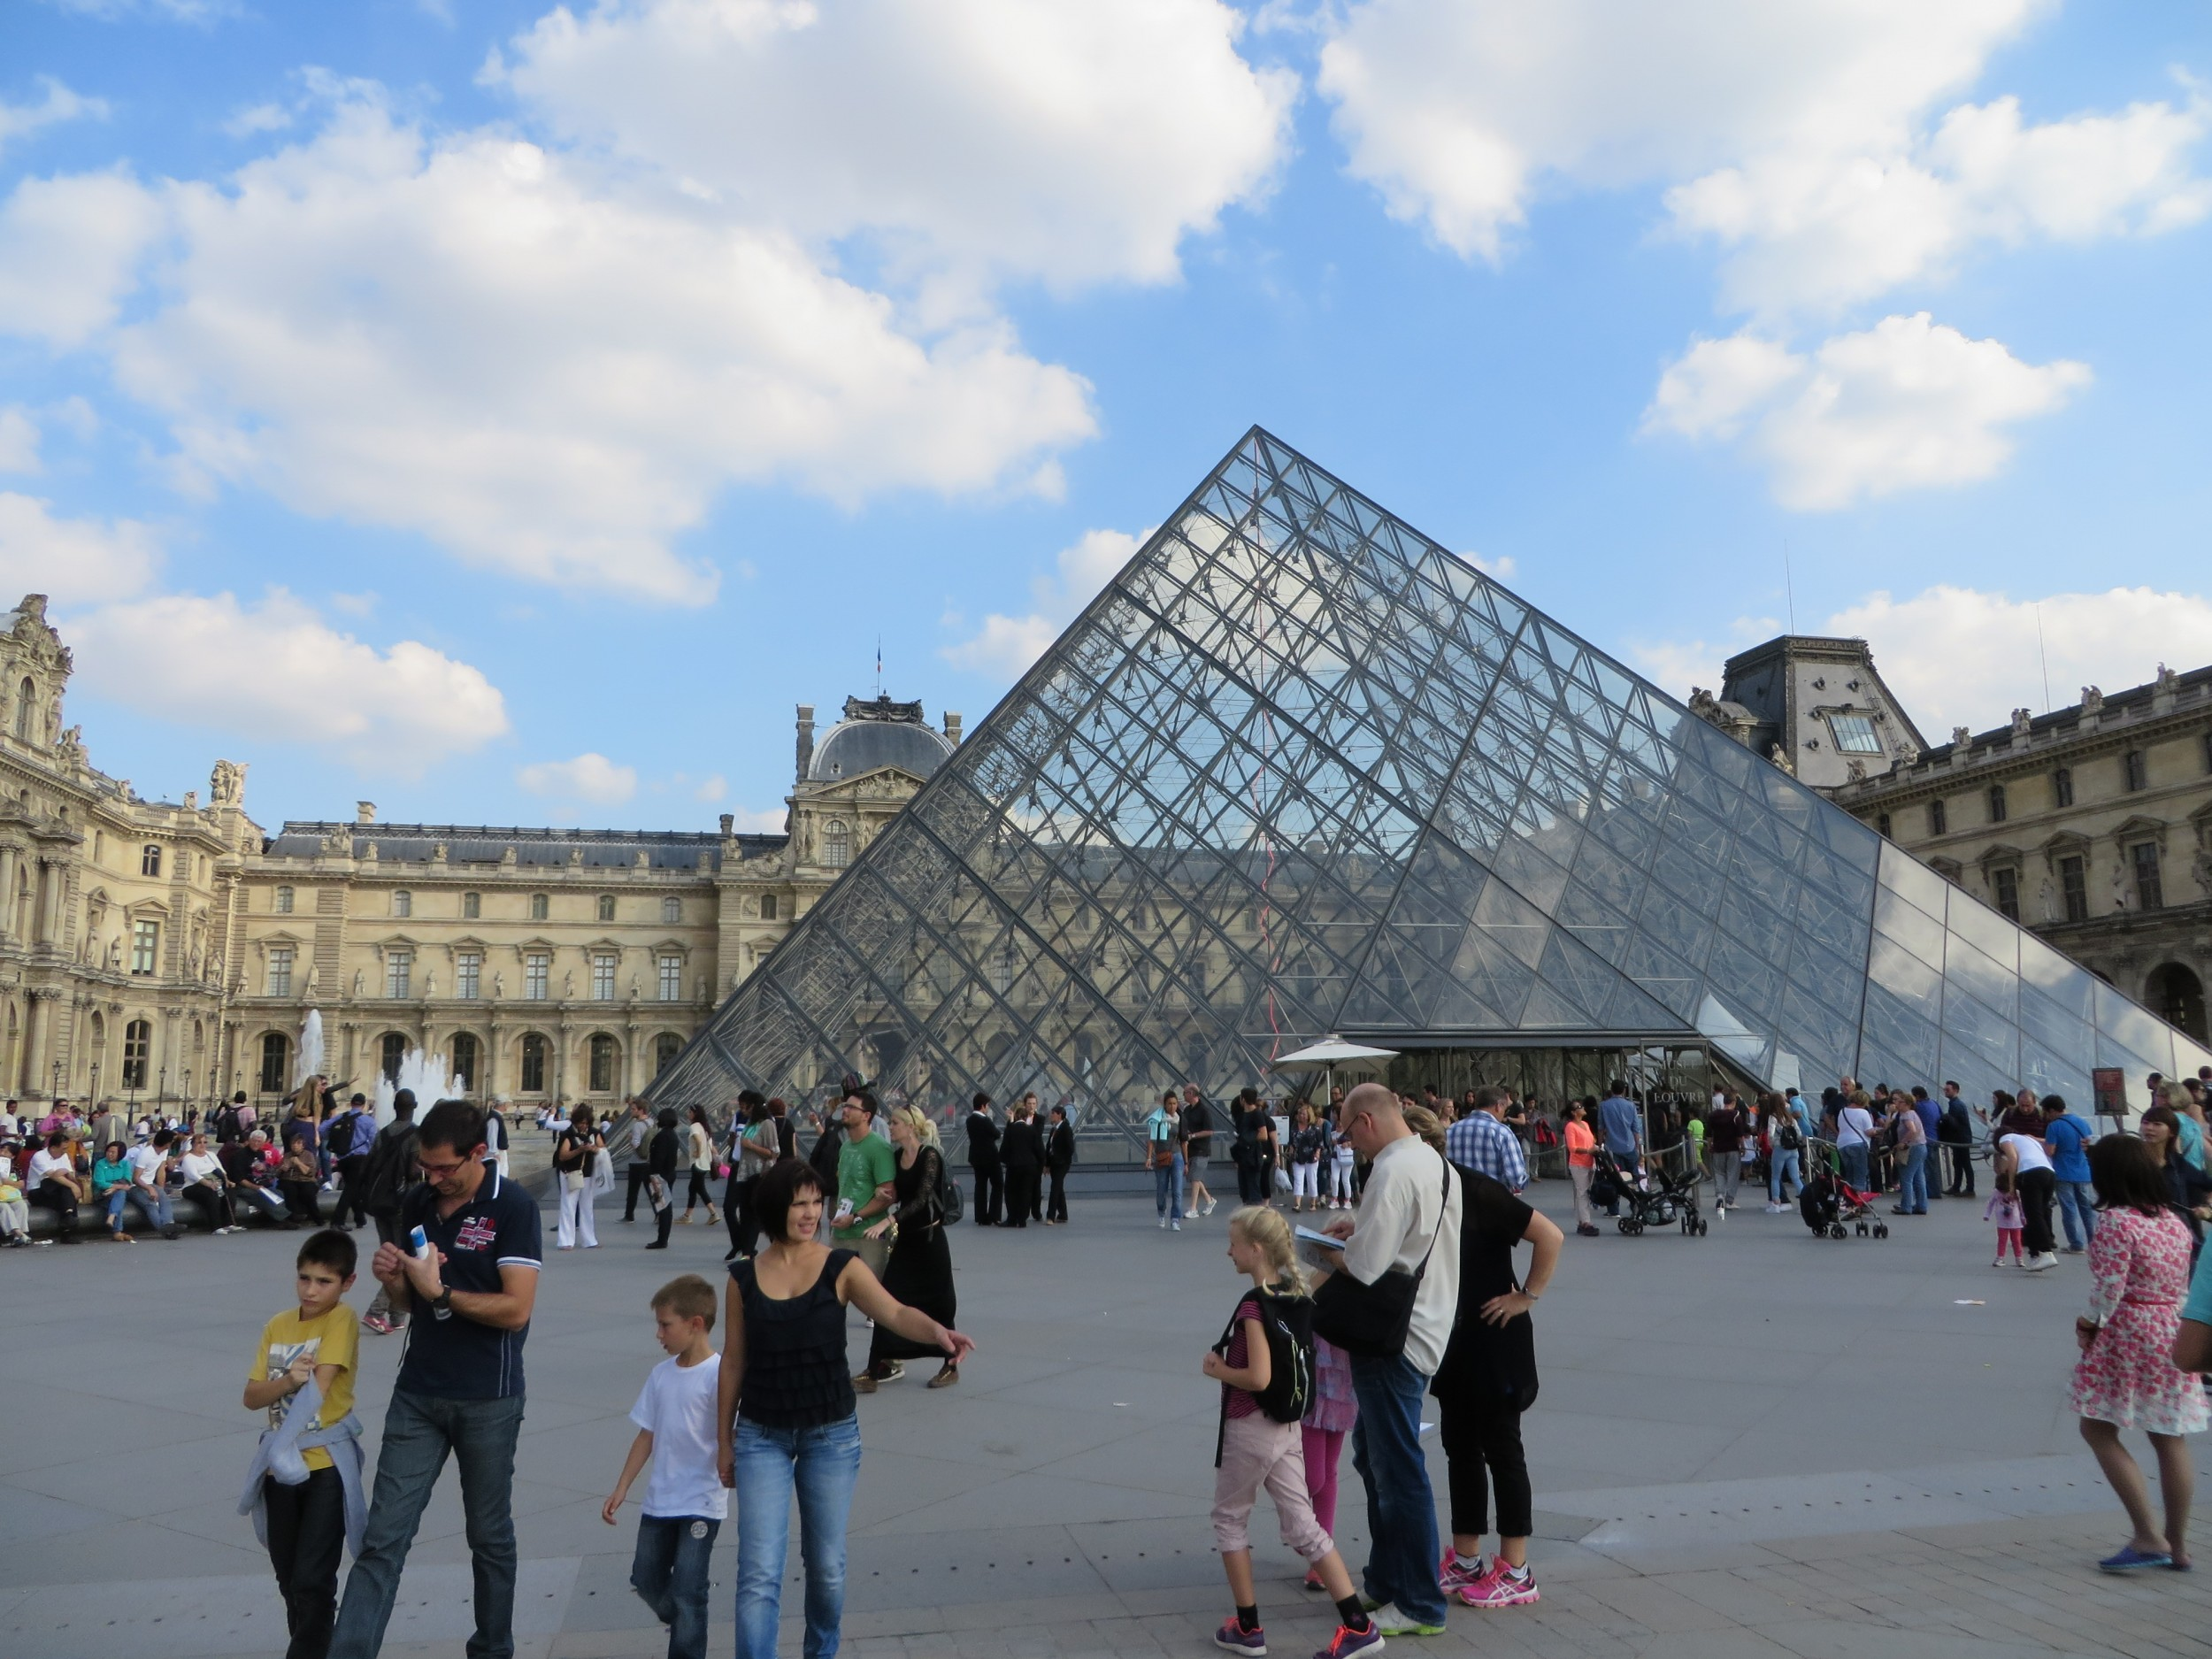 Pyramid outside the Louvre, Paris museum